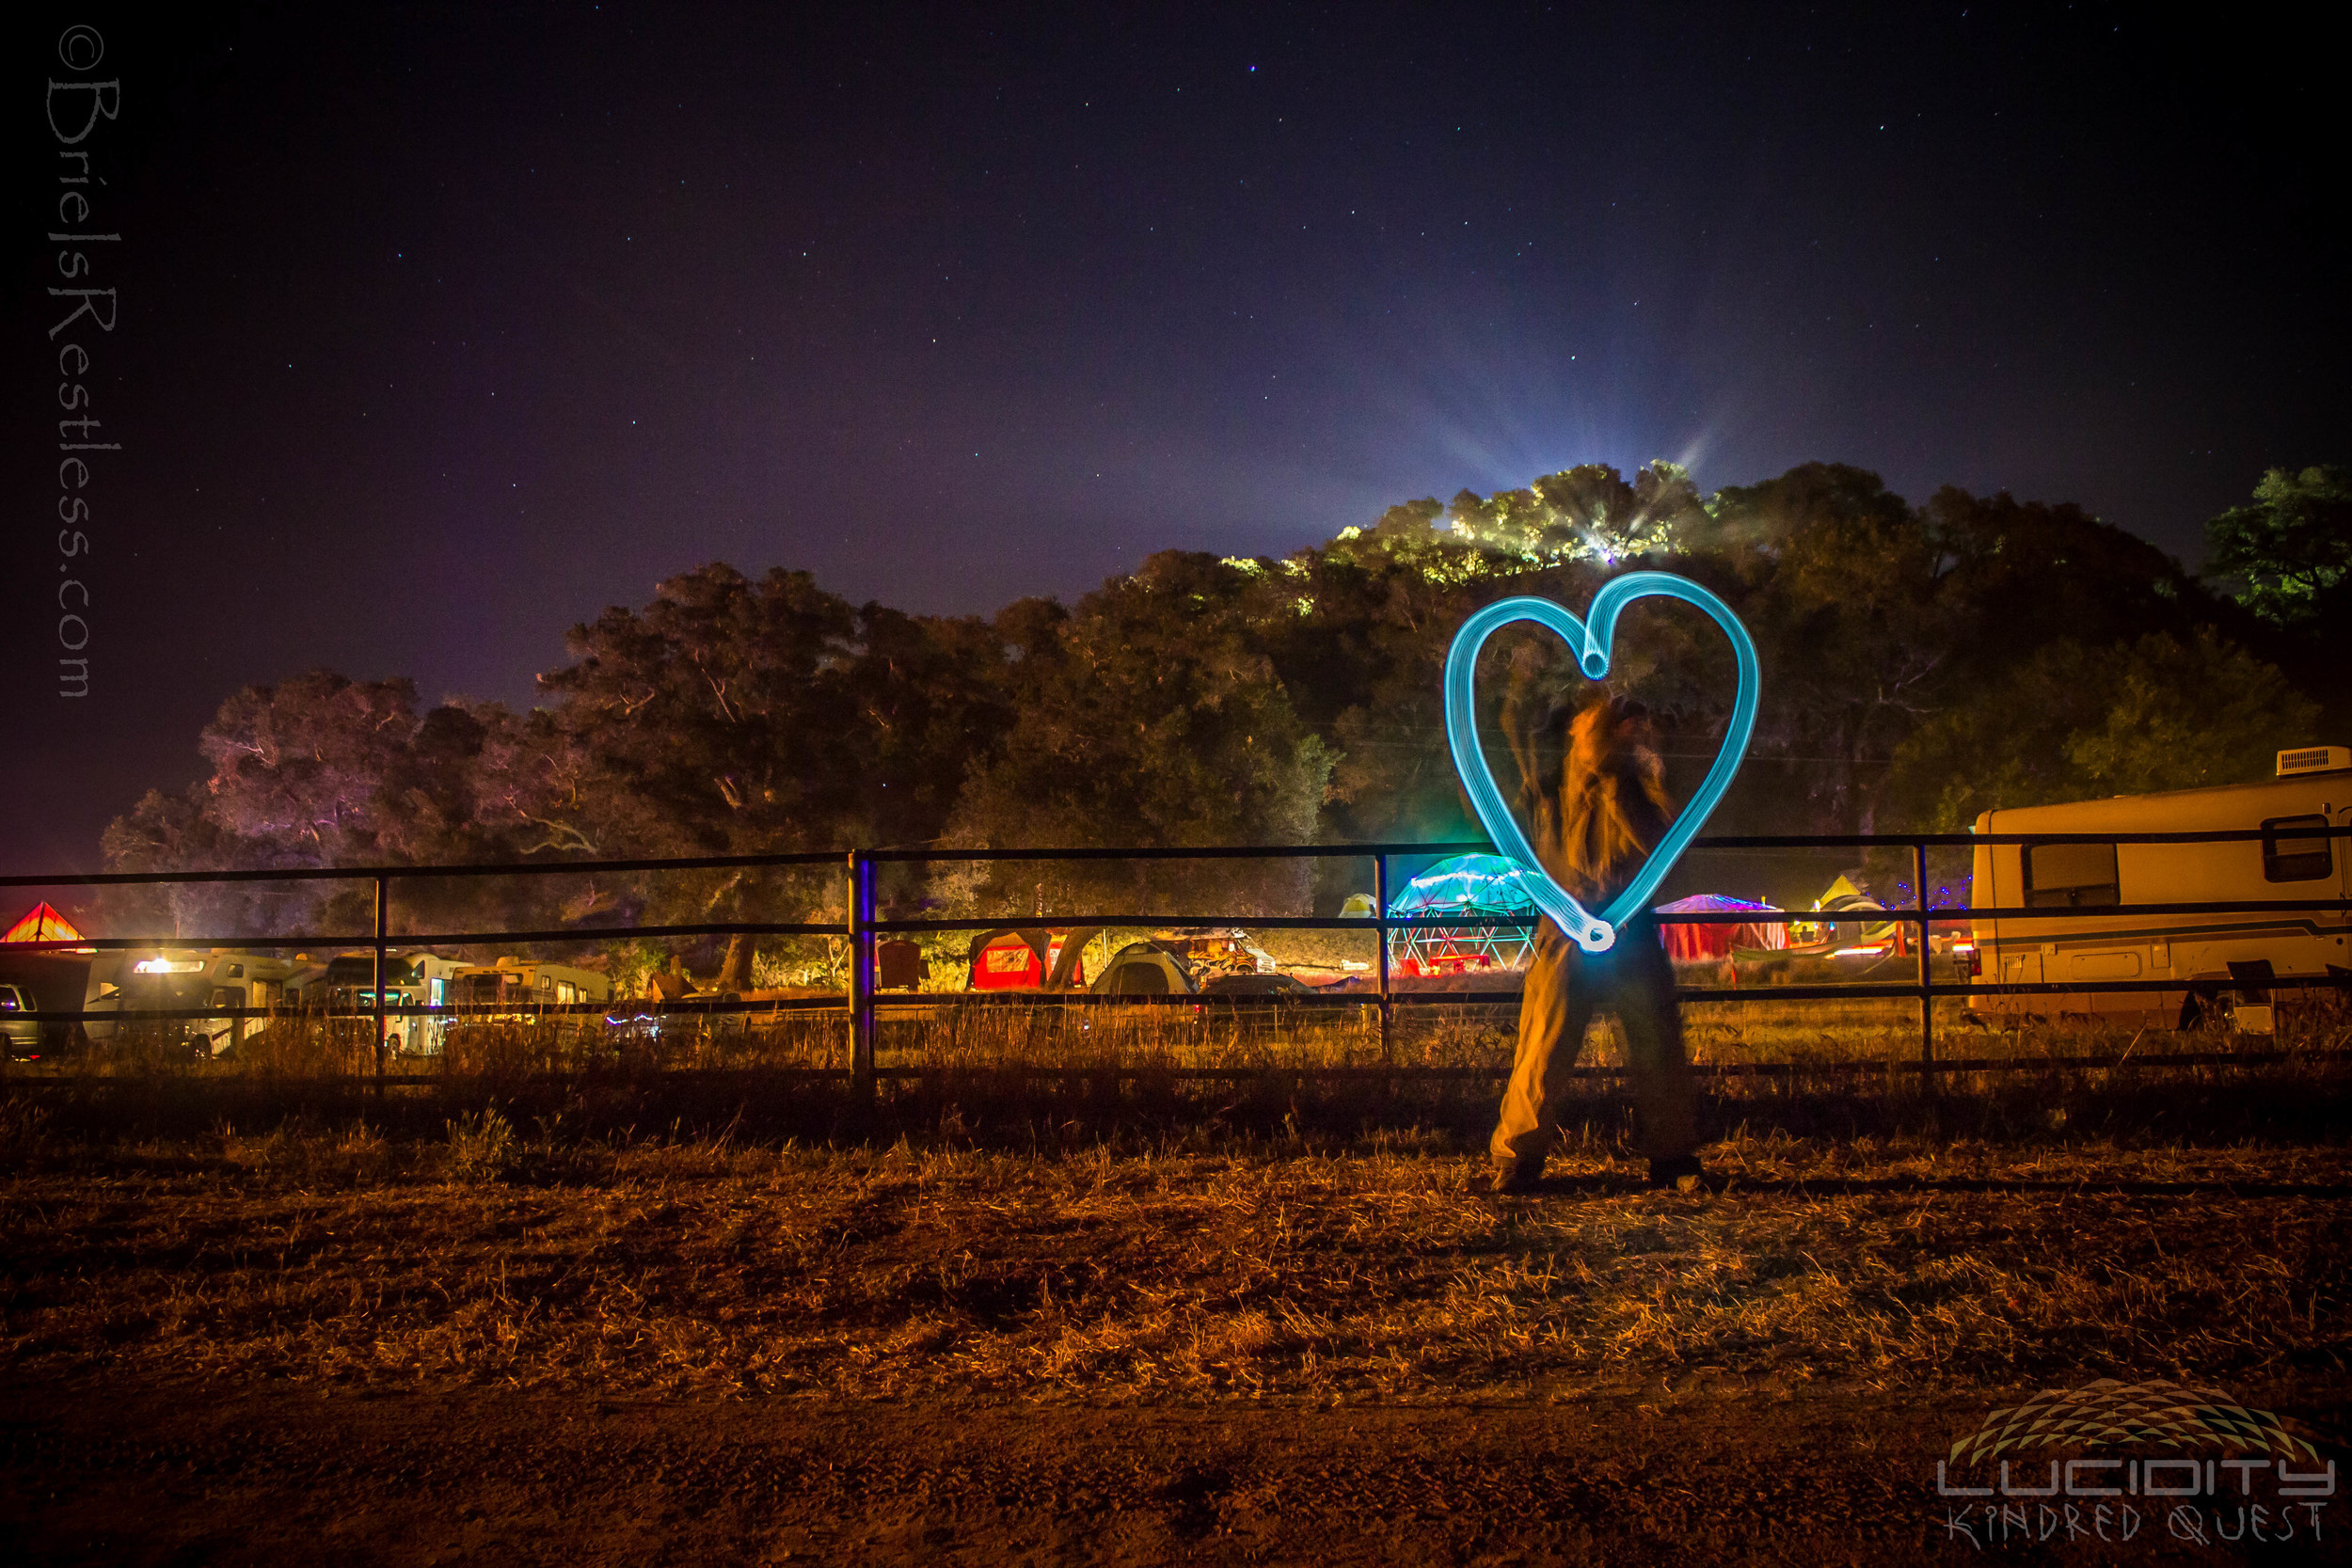 Family Garden - Long Exposure - Heart - Luciditiy - Kindred Quest - Build - April 2015 (1 of 1)-1.jpg